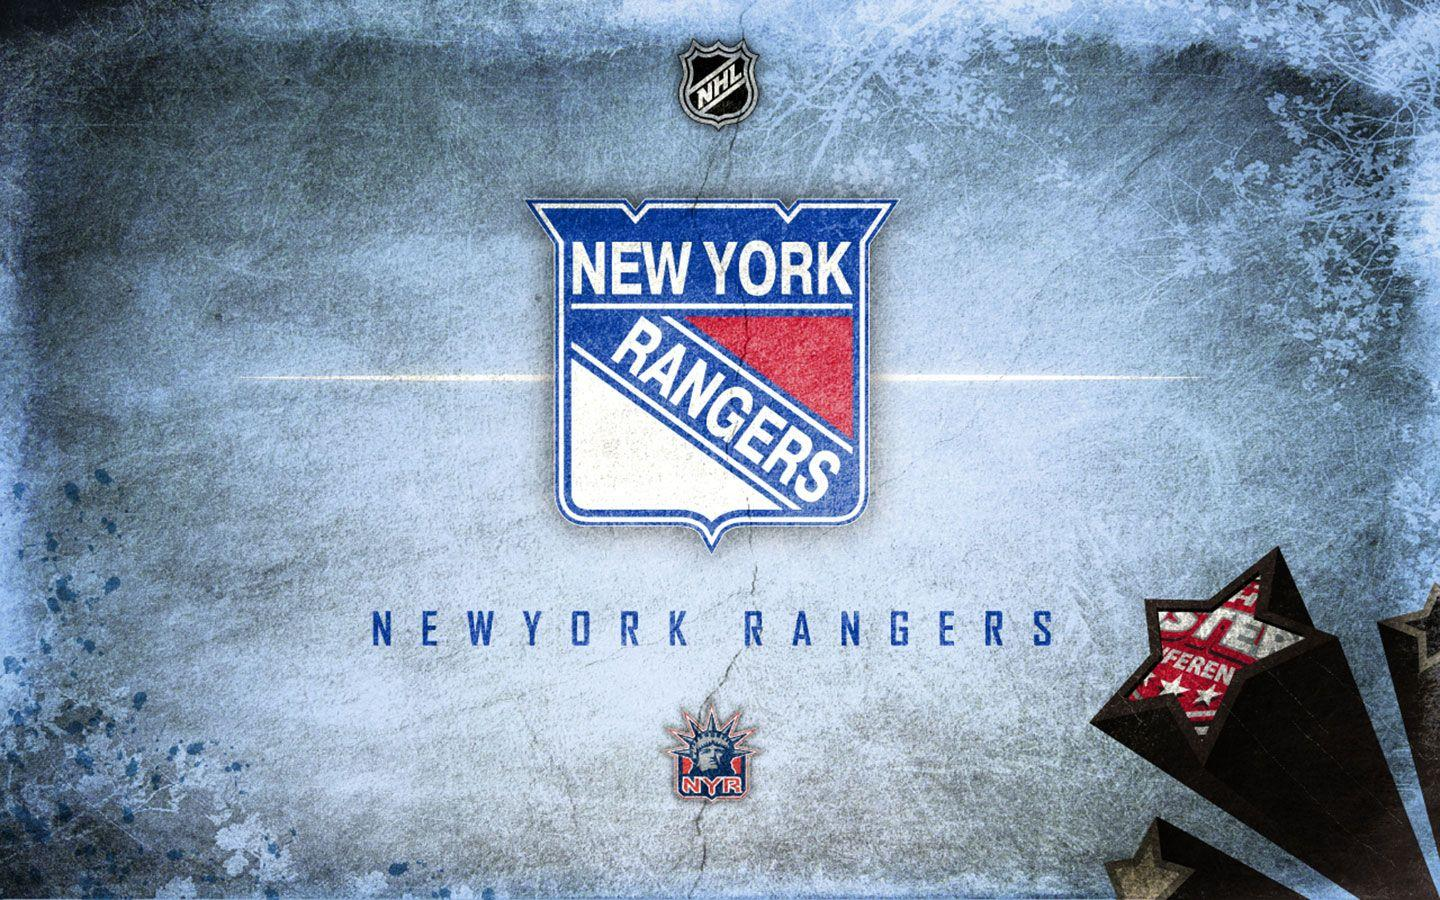 New York Rangers!